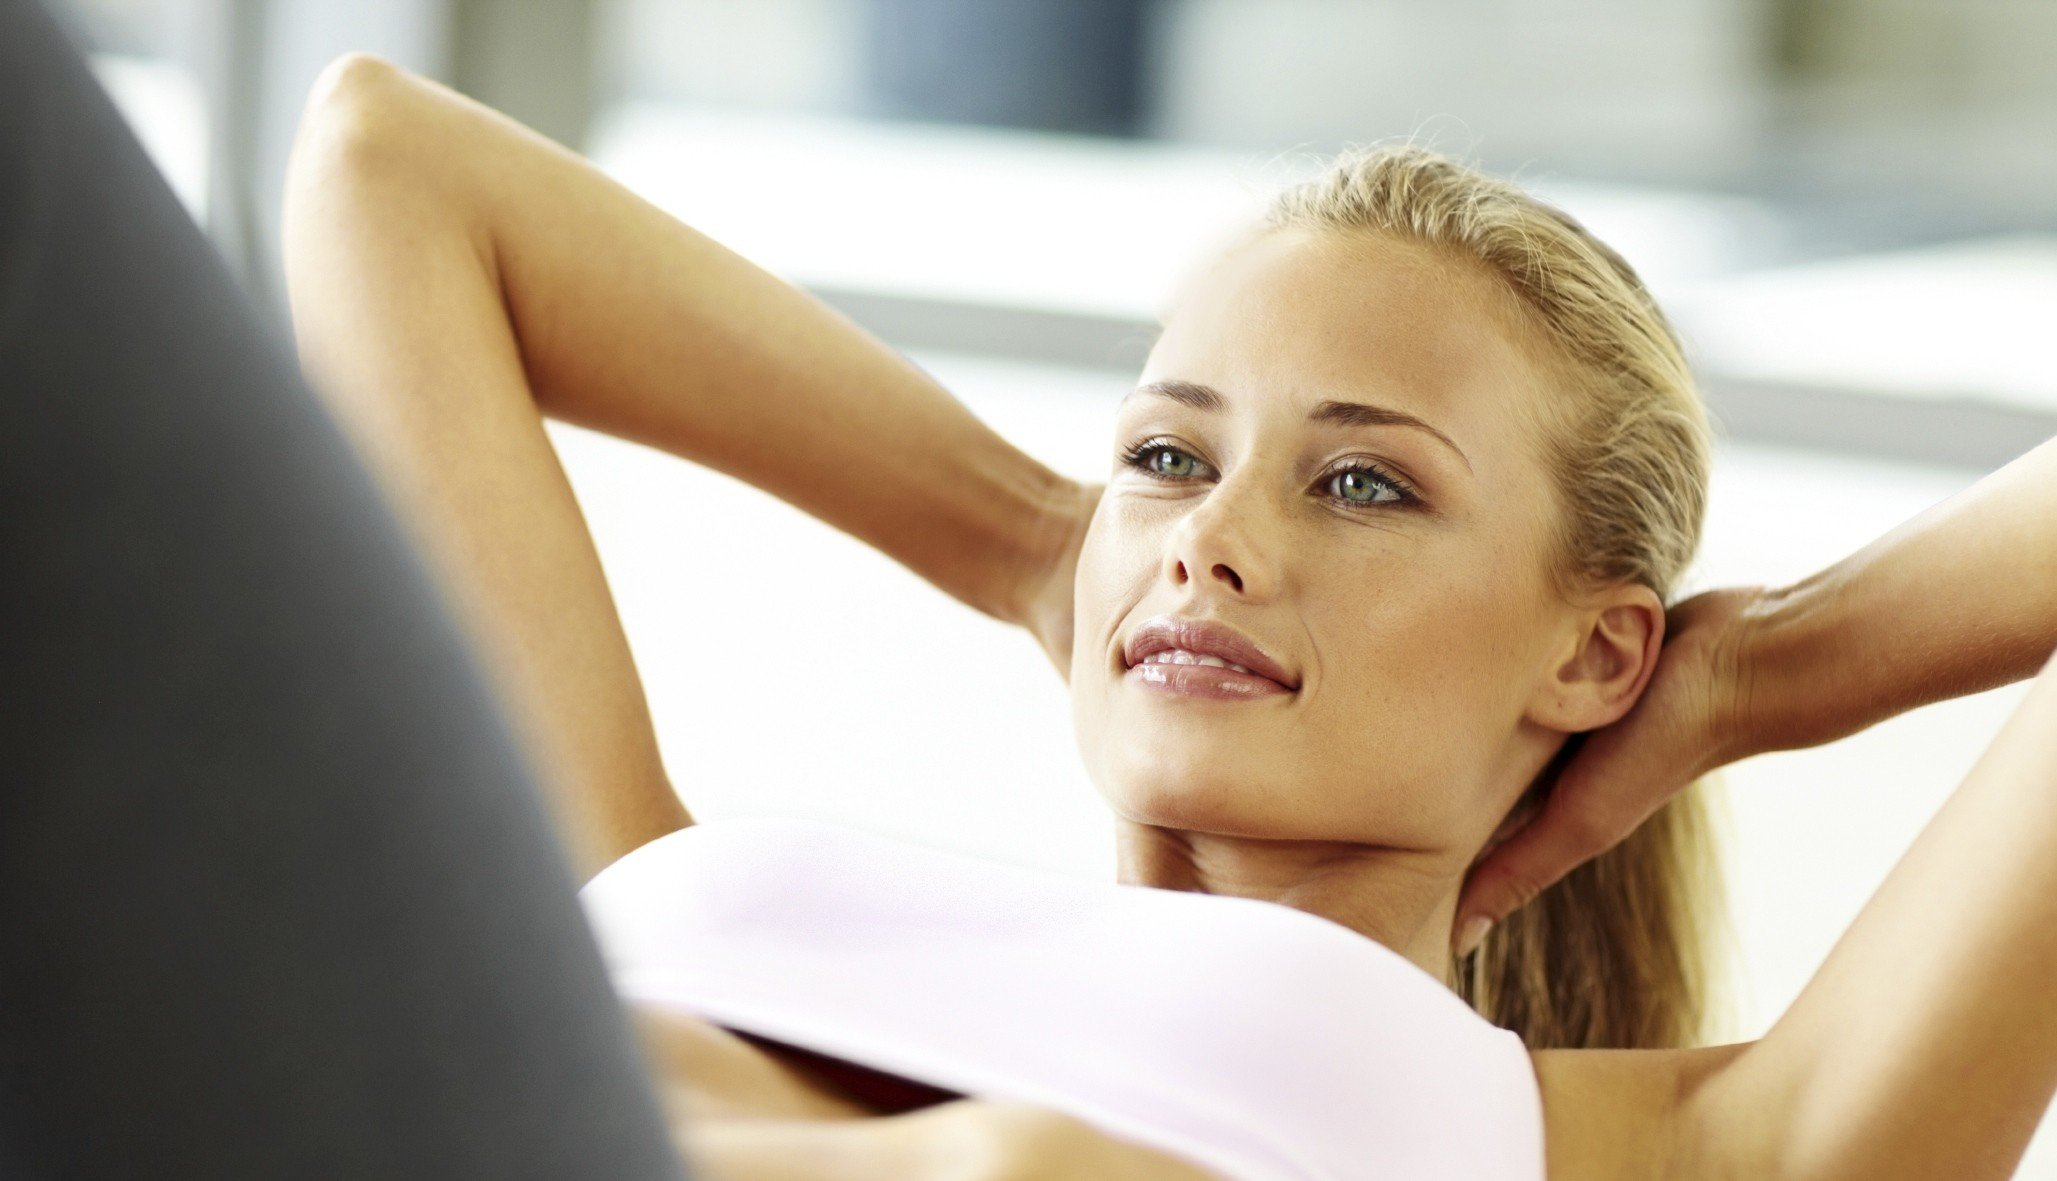 Fit young female doing abs exercise.jpg